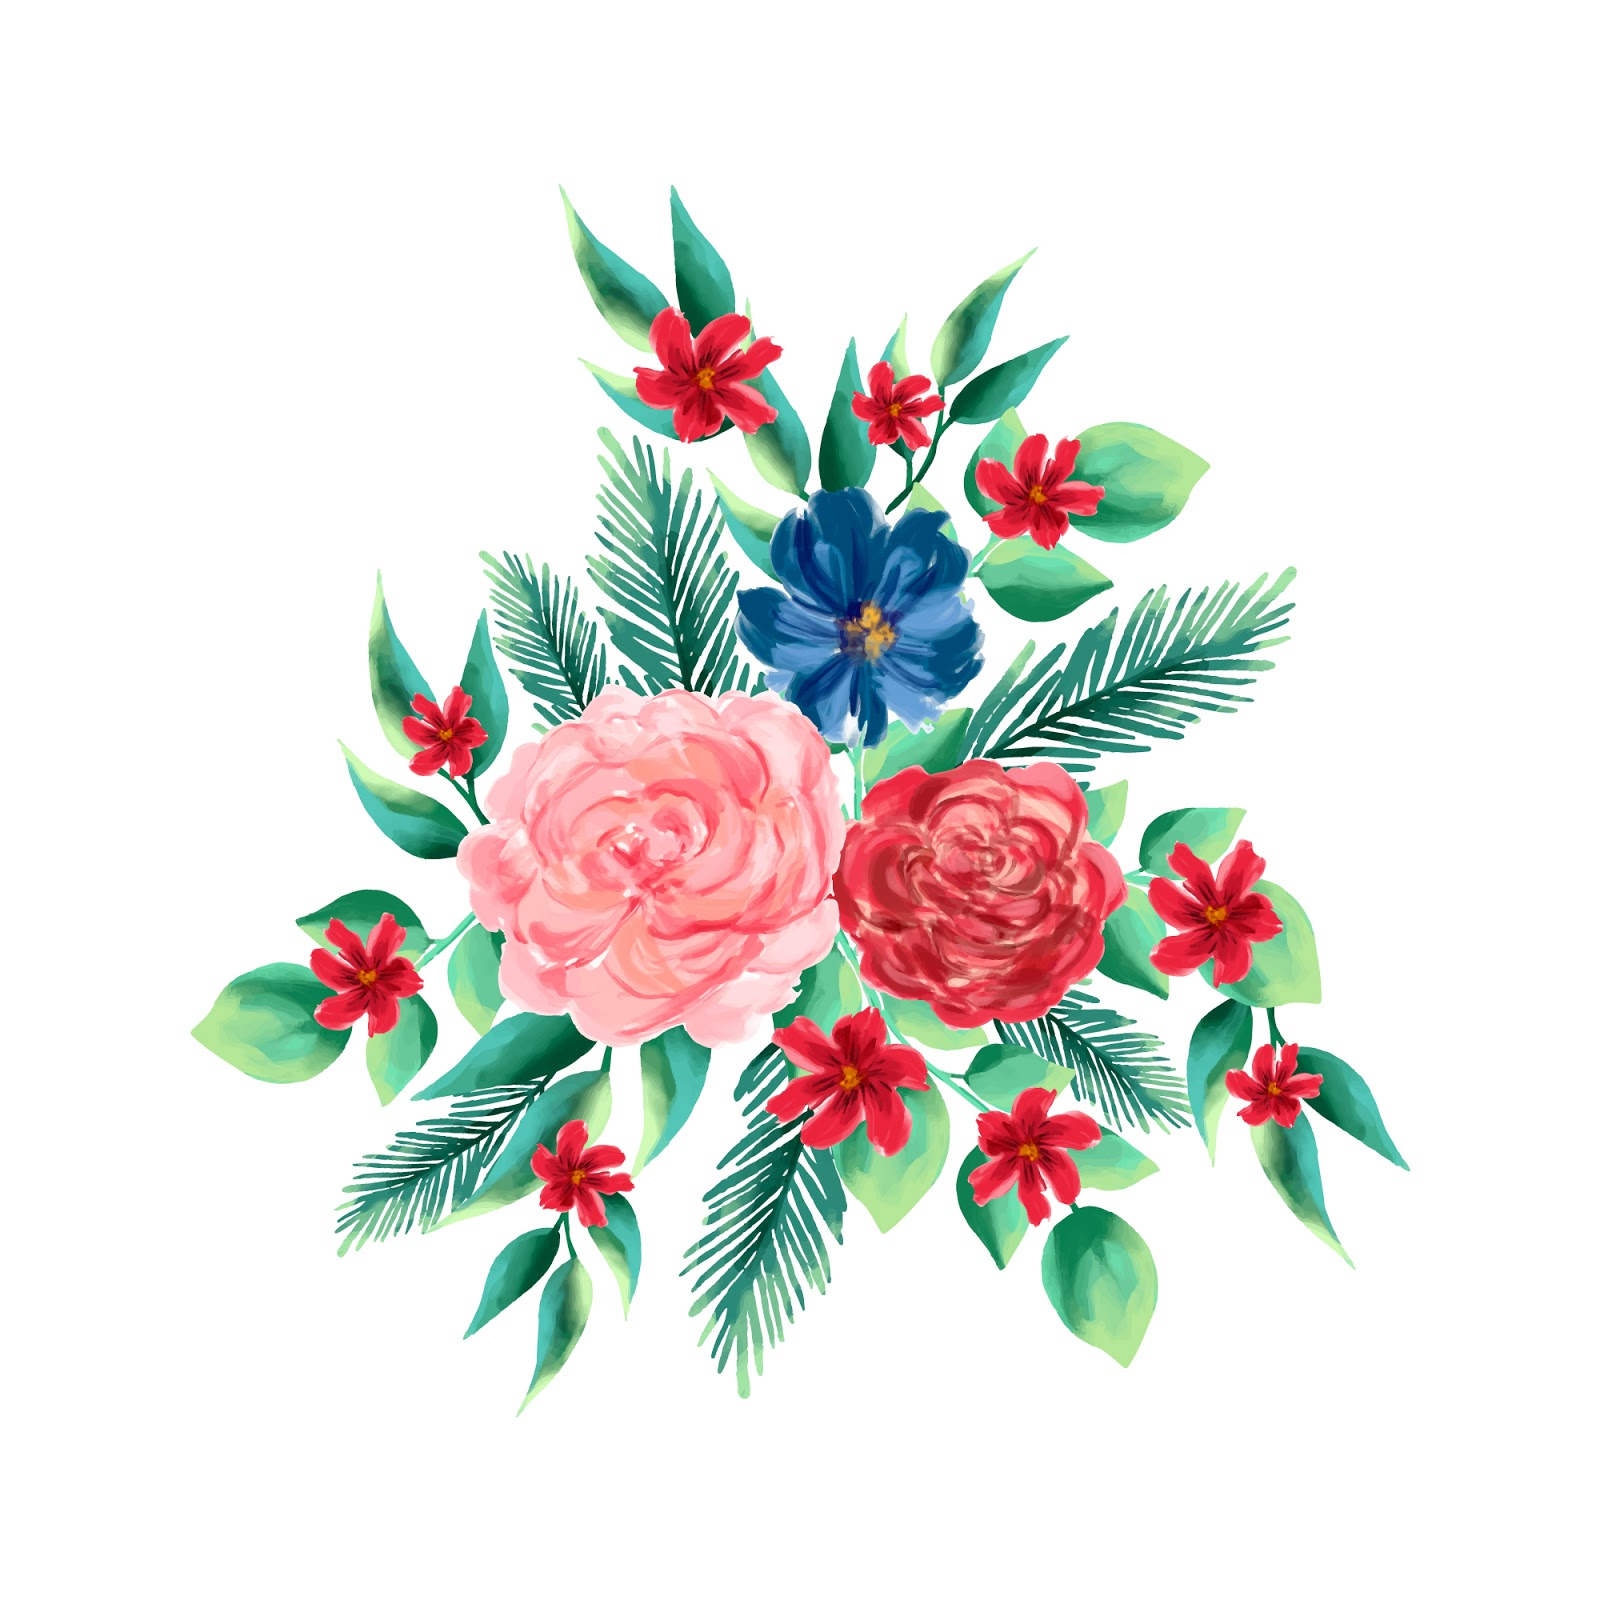 Colorful 2d Floral Bouquet Free Download Vector CDR, AI, EPS and PNG Formats